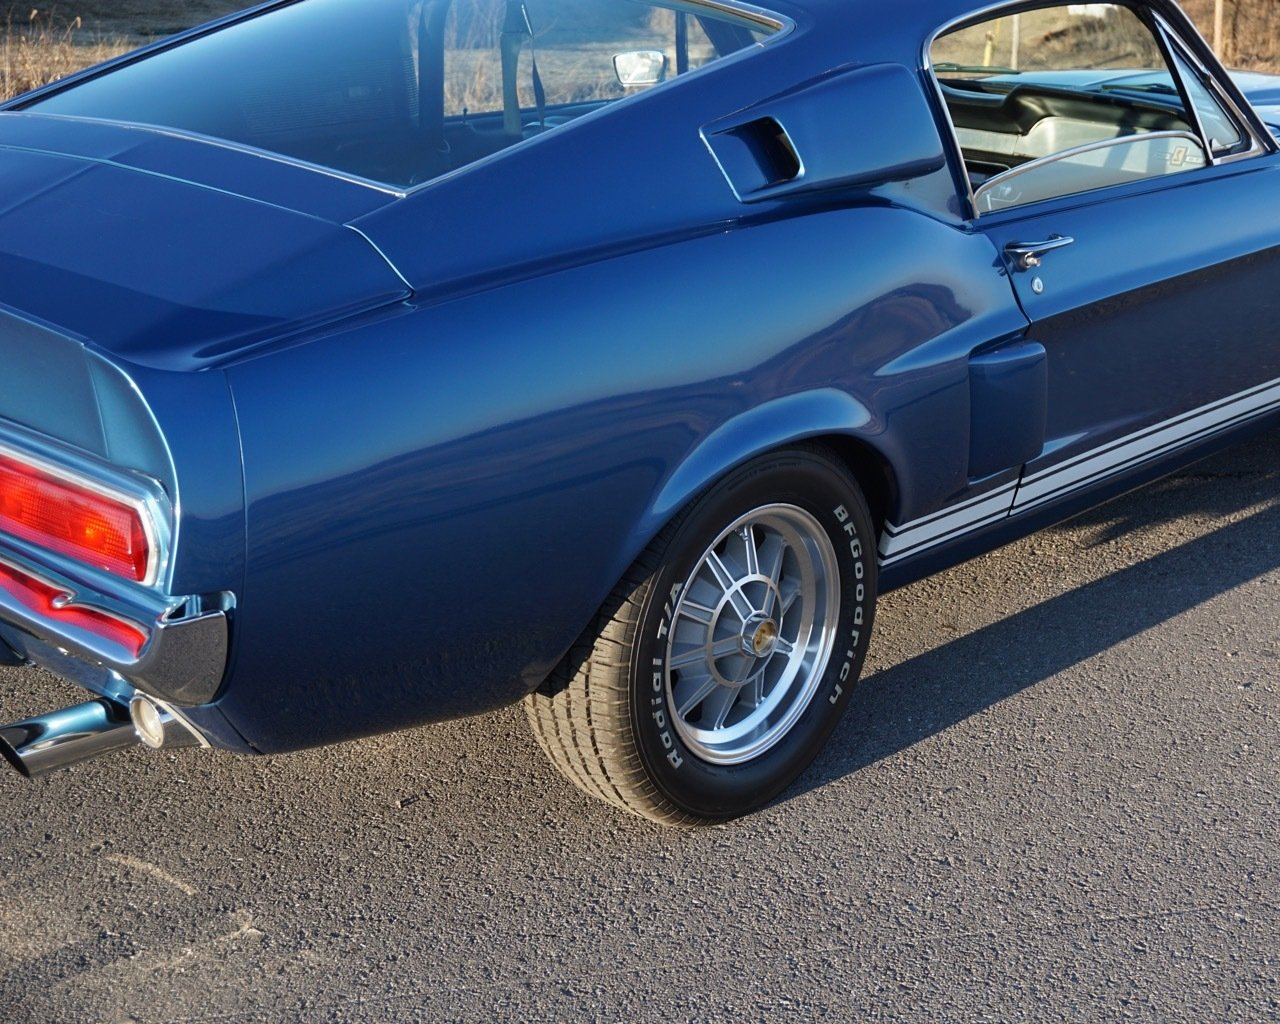 1967 Shelby GT500 | 2S Motorcars | Specializing in High